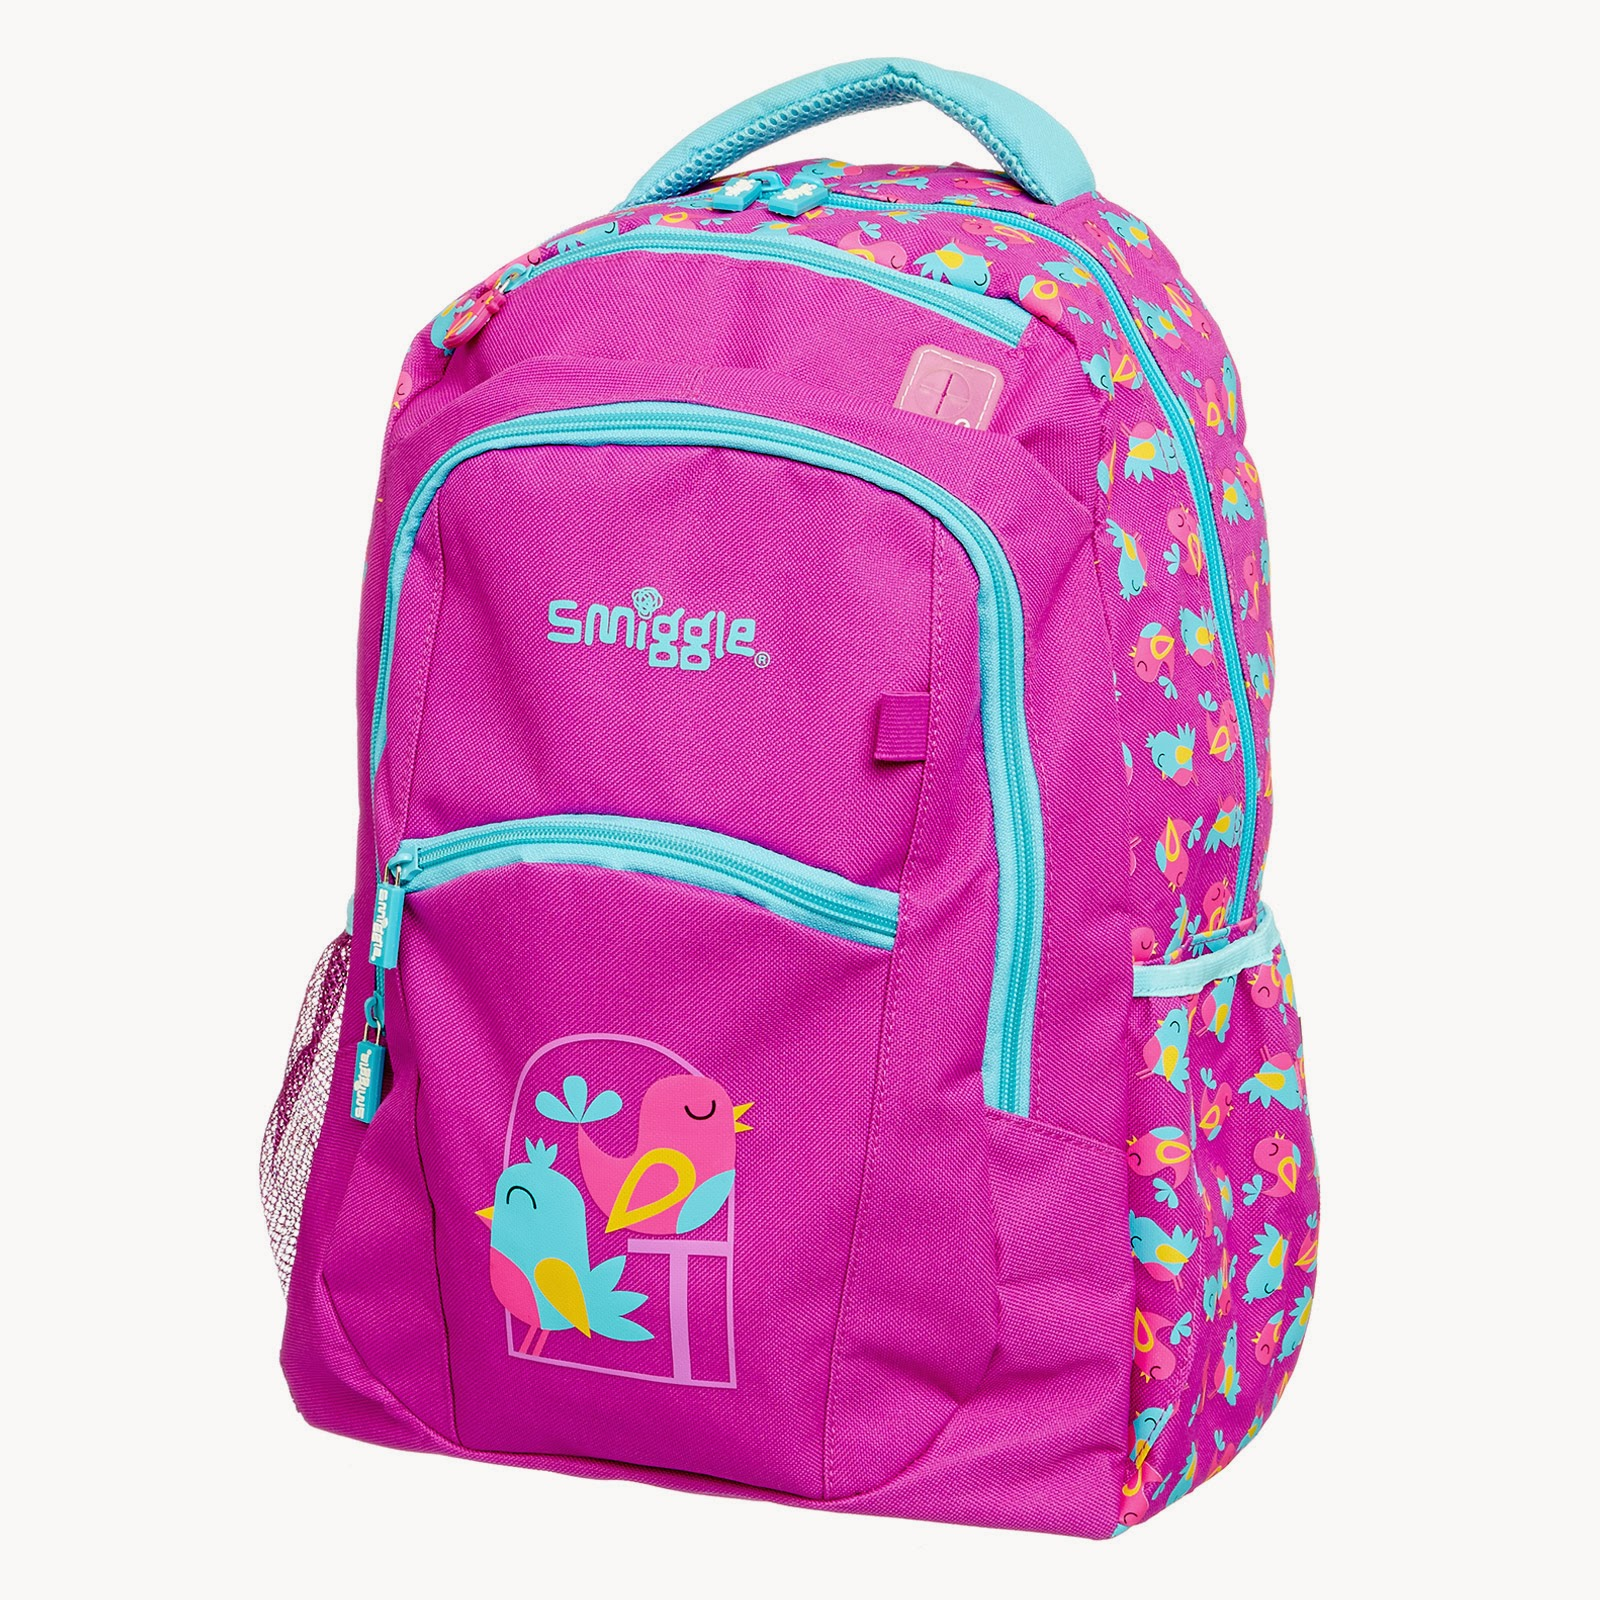 School bag for year 7 - The Curved Drink Bottles 12 95 Are My Son S Favourite Drink Bottles Bpa Free Large Capacity Volume A Range Of Colours And Designs And A Lockable Flip